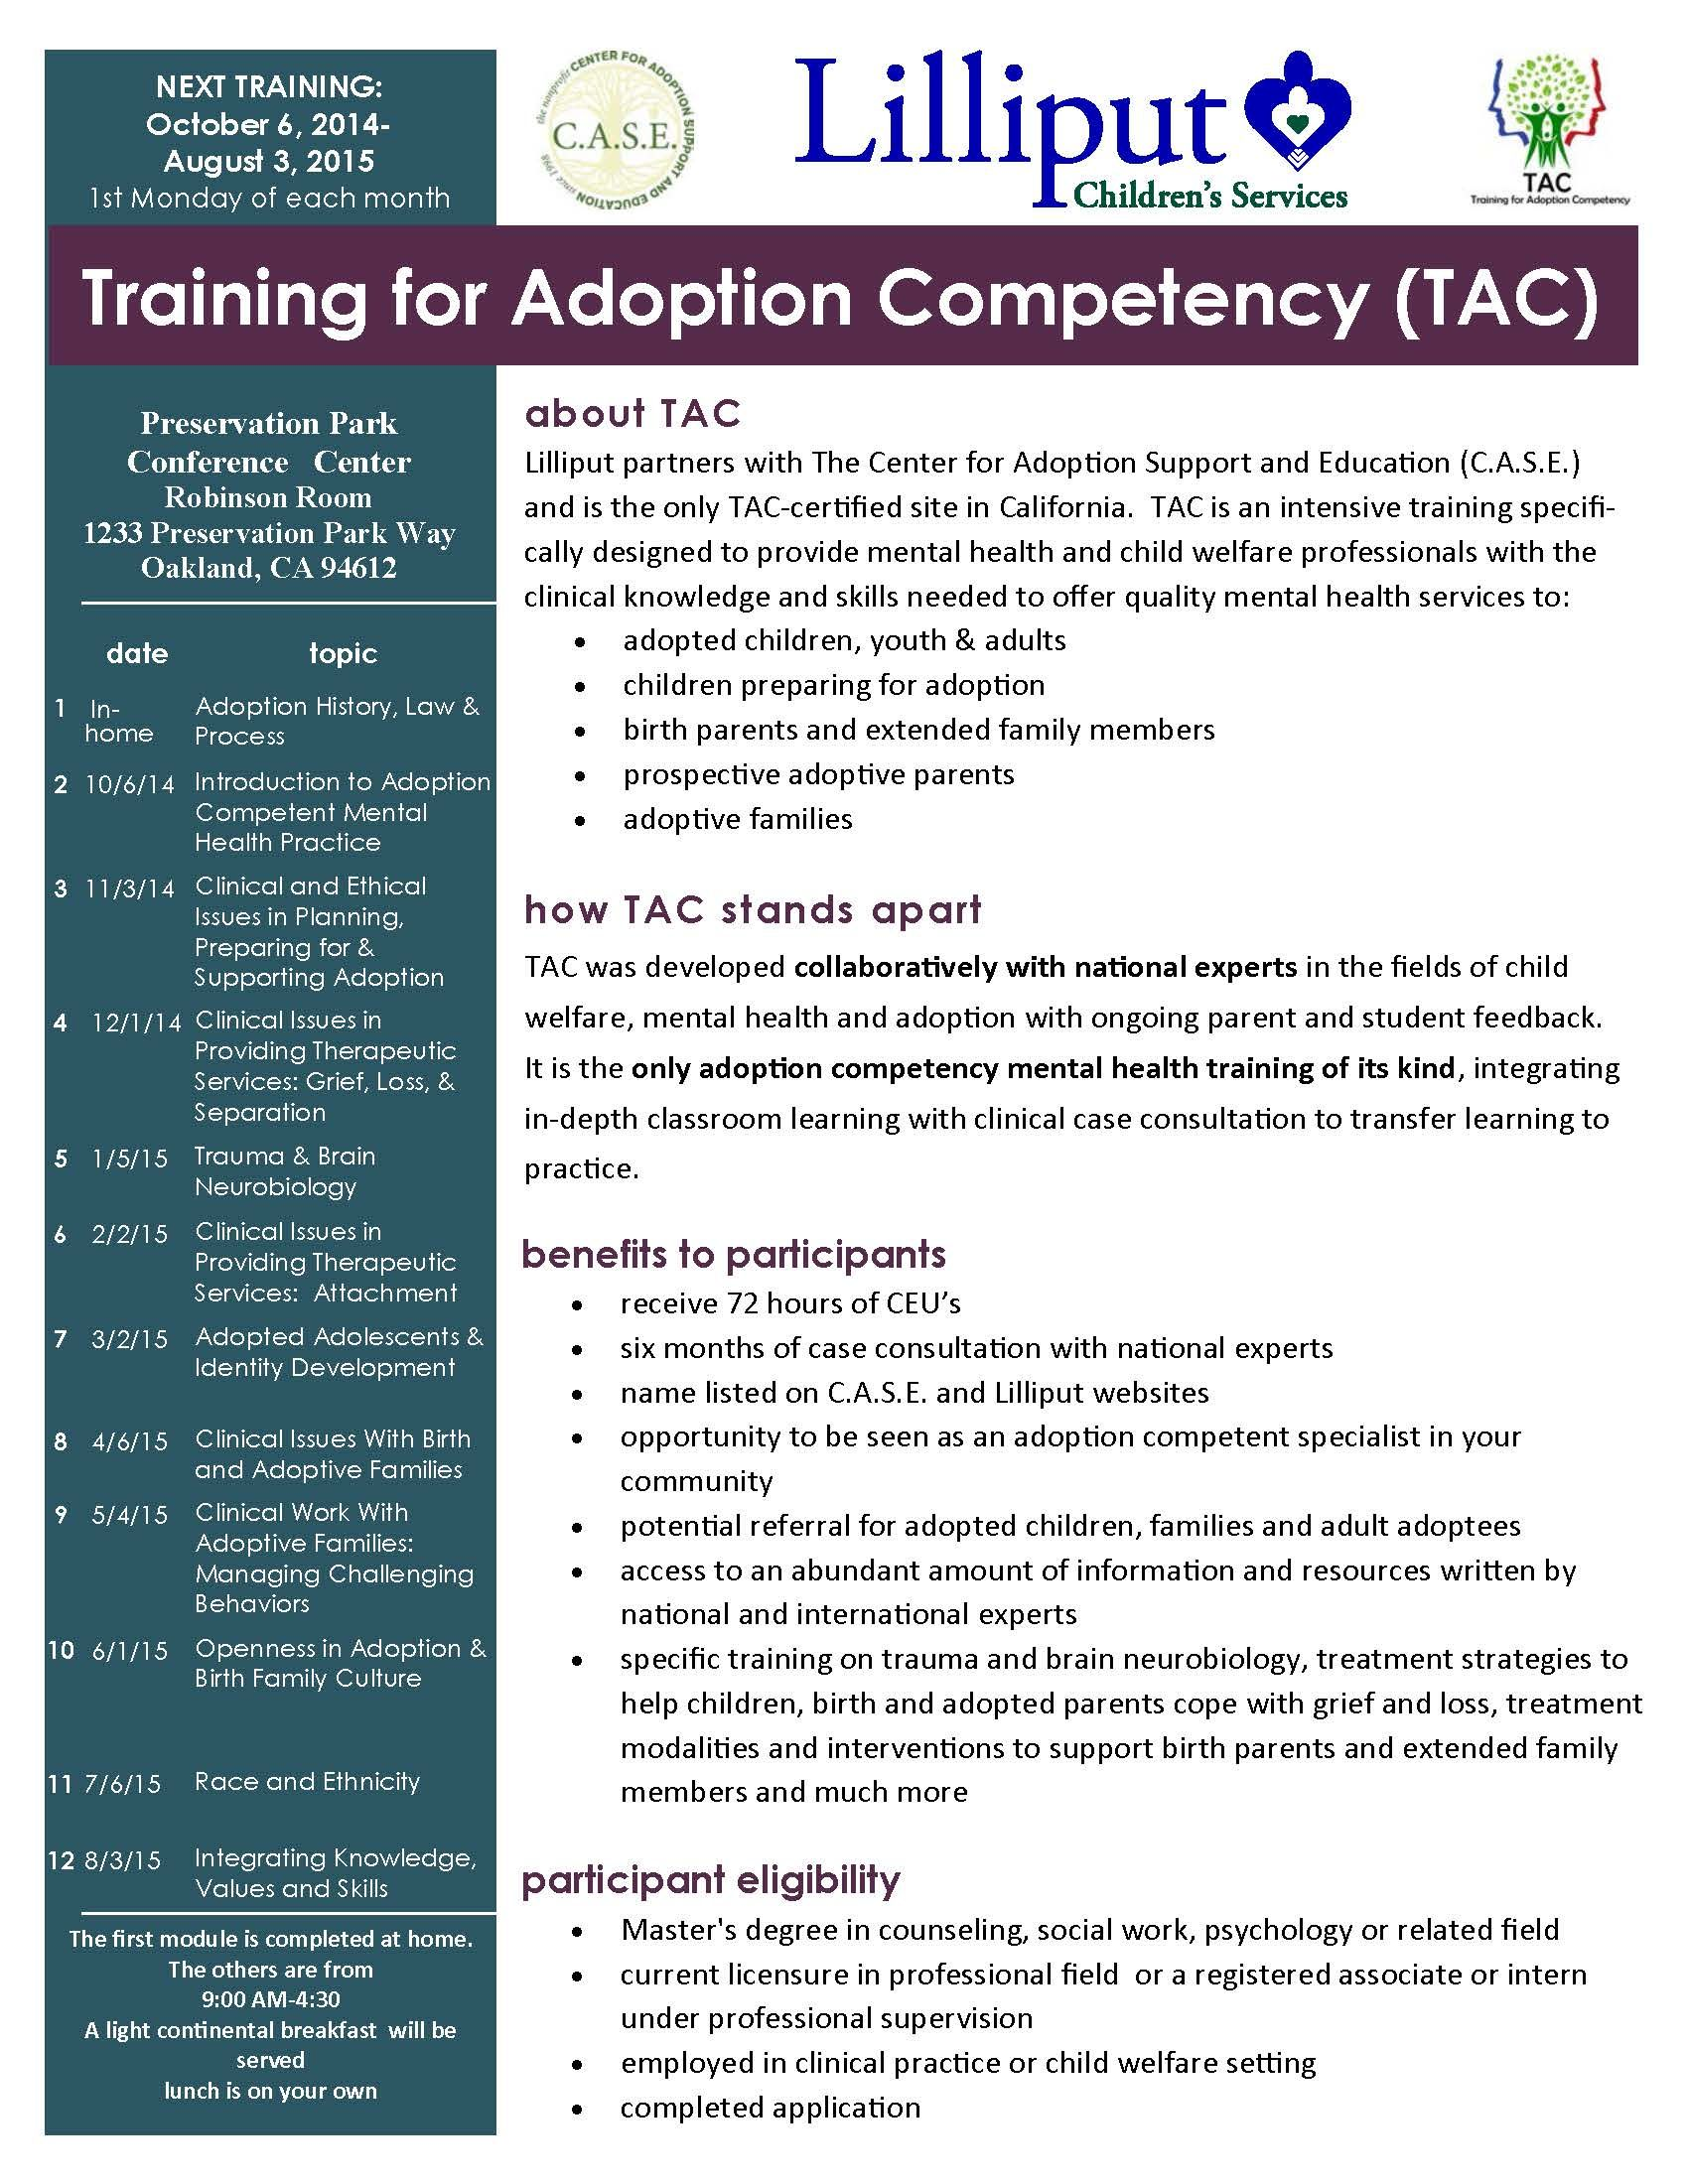 Training for Adoption Competency - flyer page 1 10/6/14 - 8/3/15 Oakland, CA